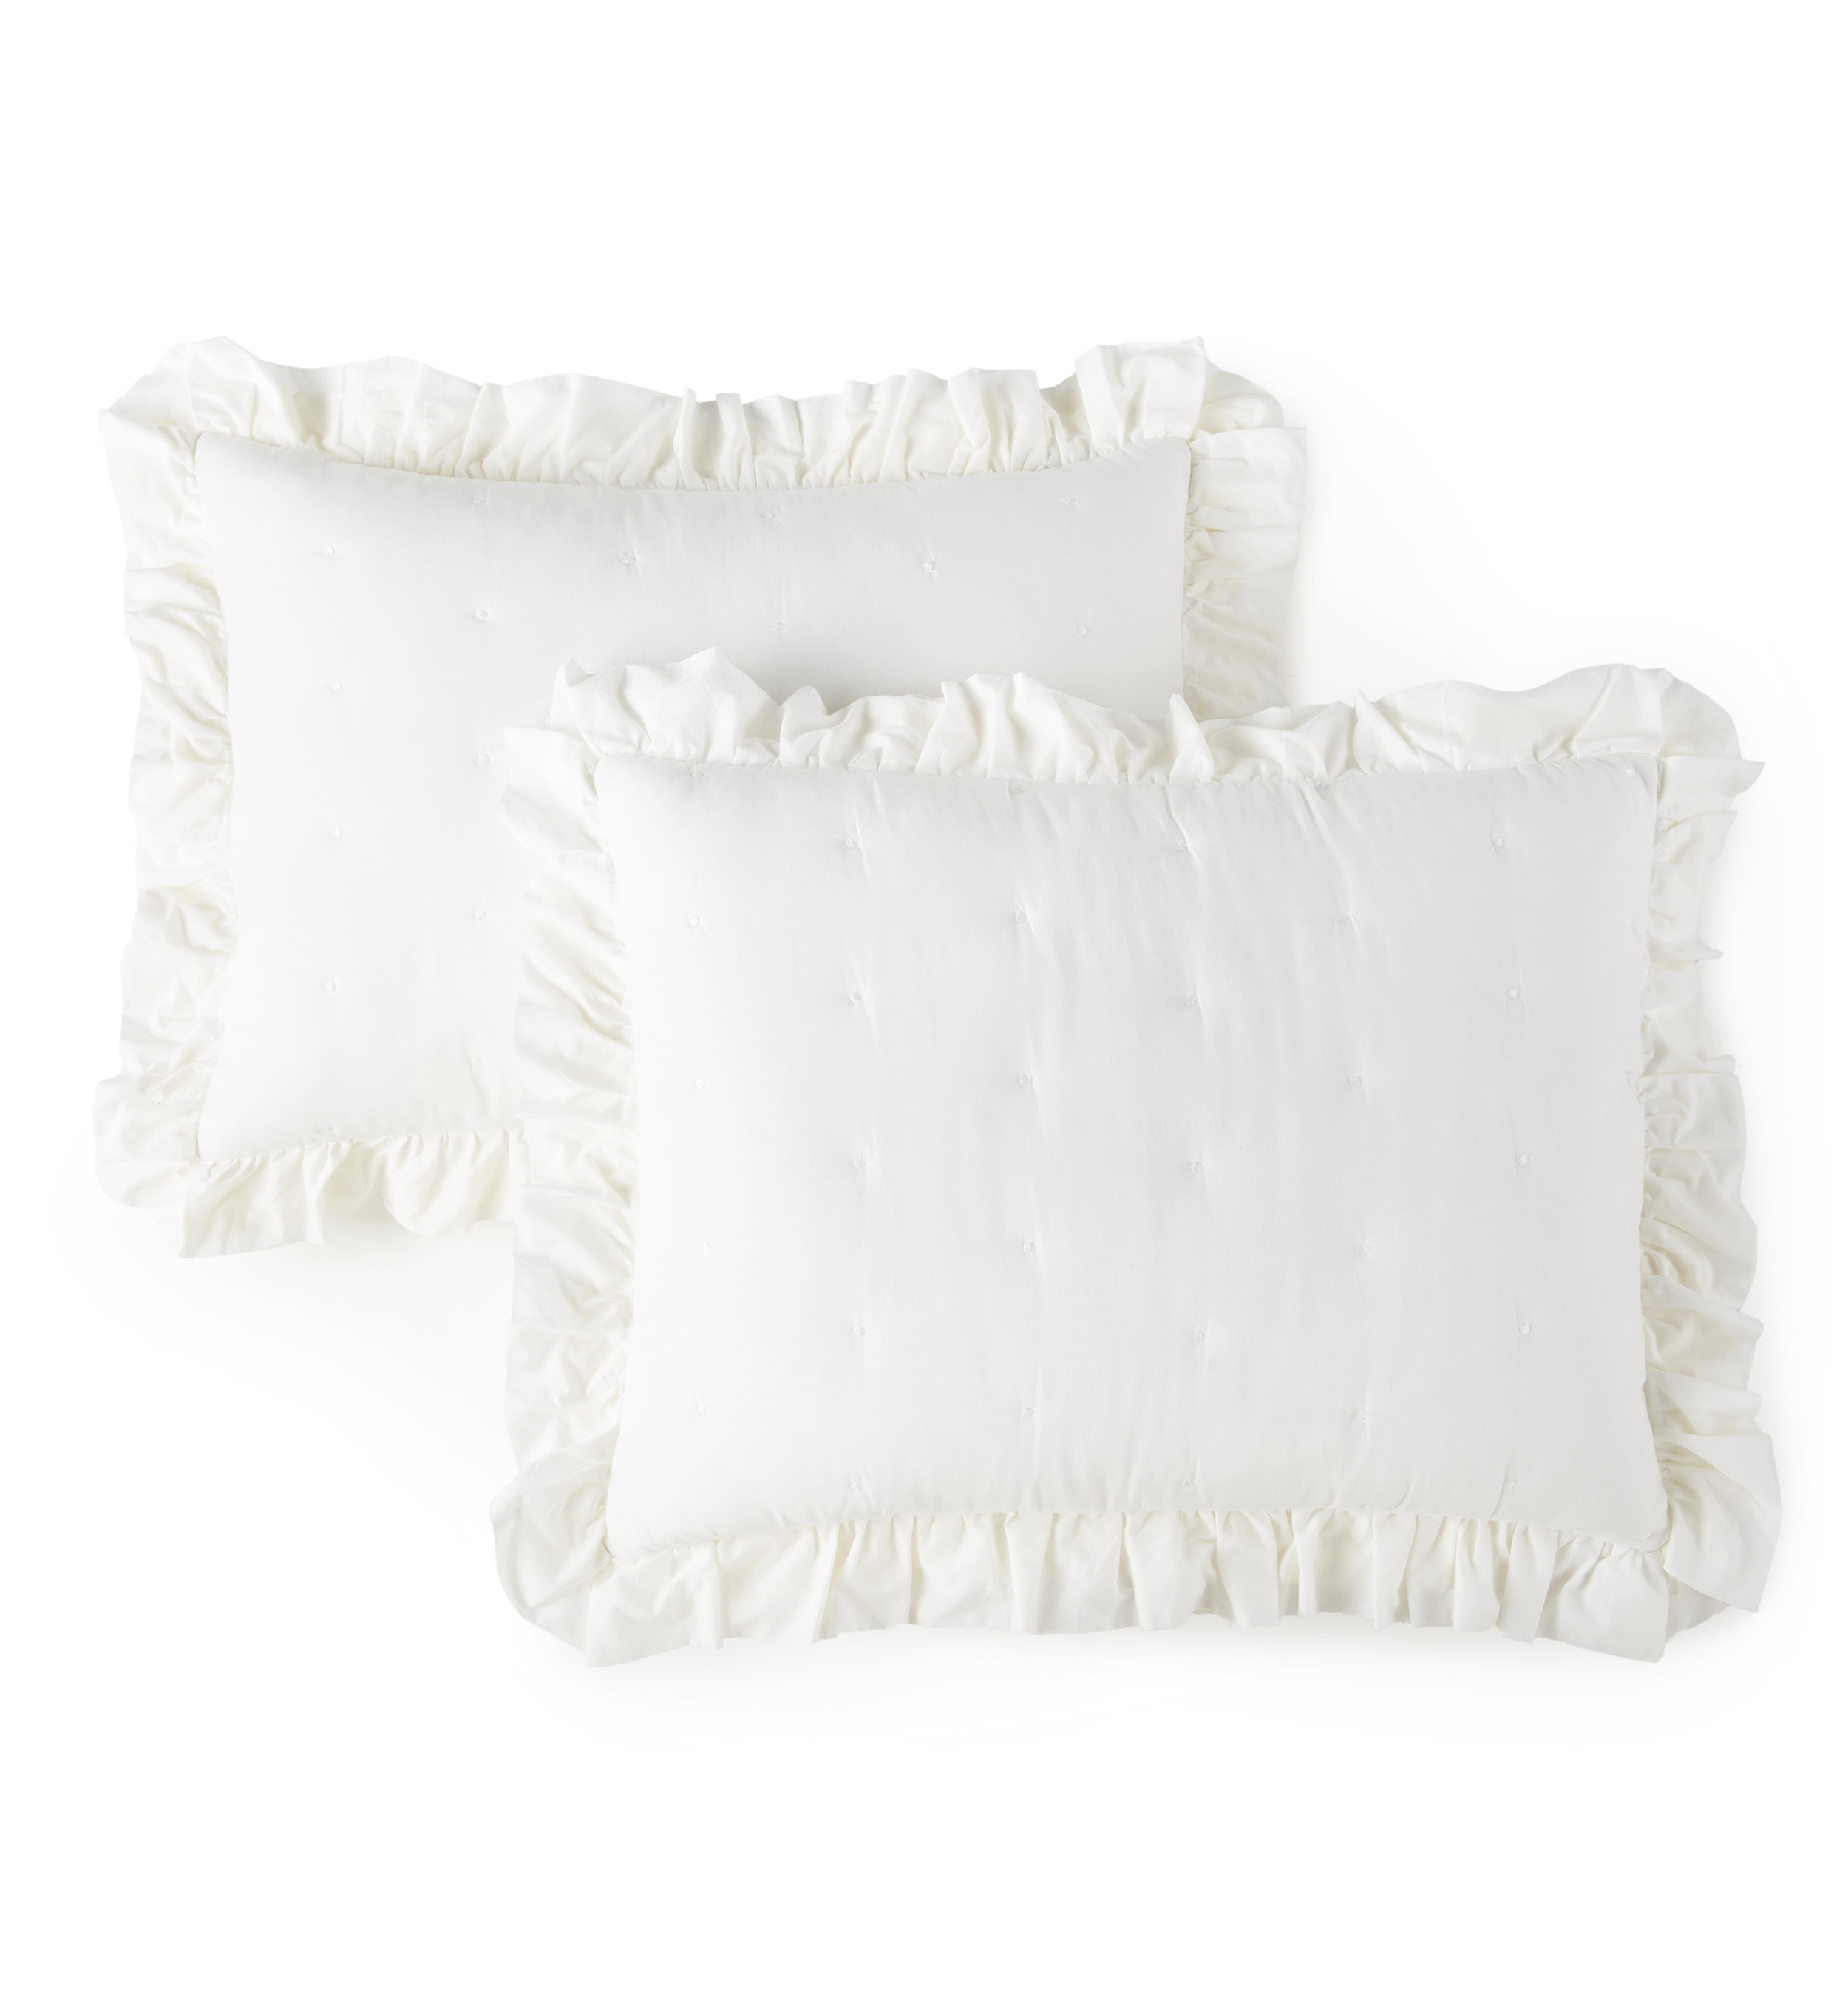 Cotton Voile White Ruffle Farmhouse Bed Quilt Shams by heirloomed collection